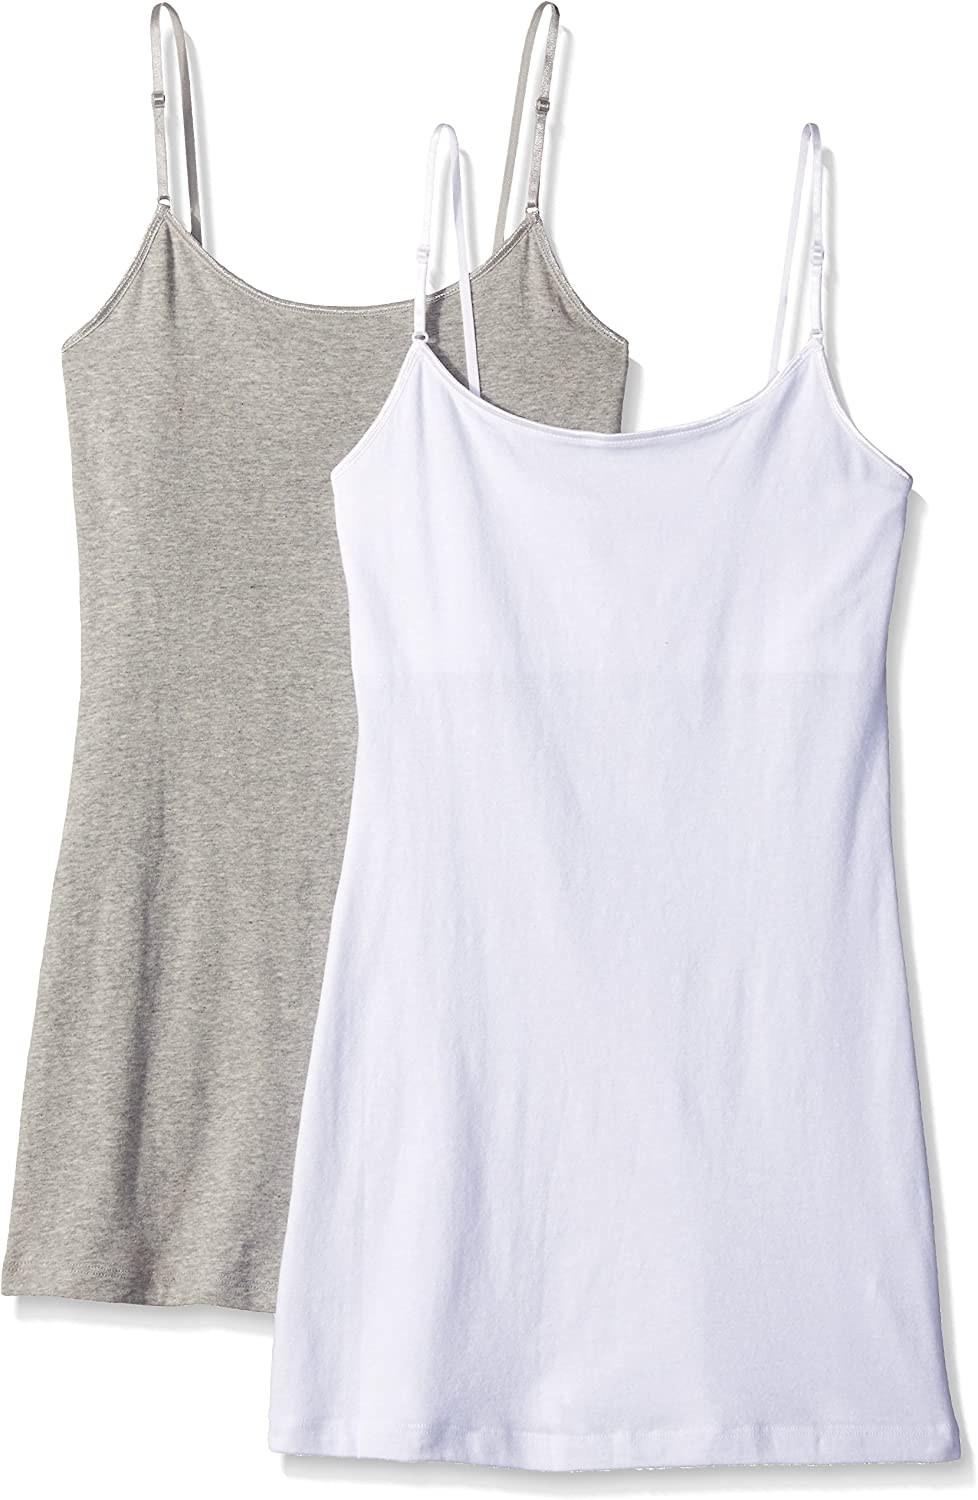 Pure Style Girlfriends Women's Long Cami Tank with Built in Bra & Adjustable Strap 2Pack